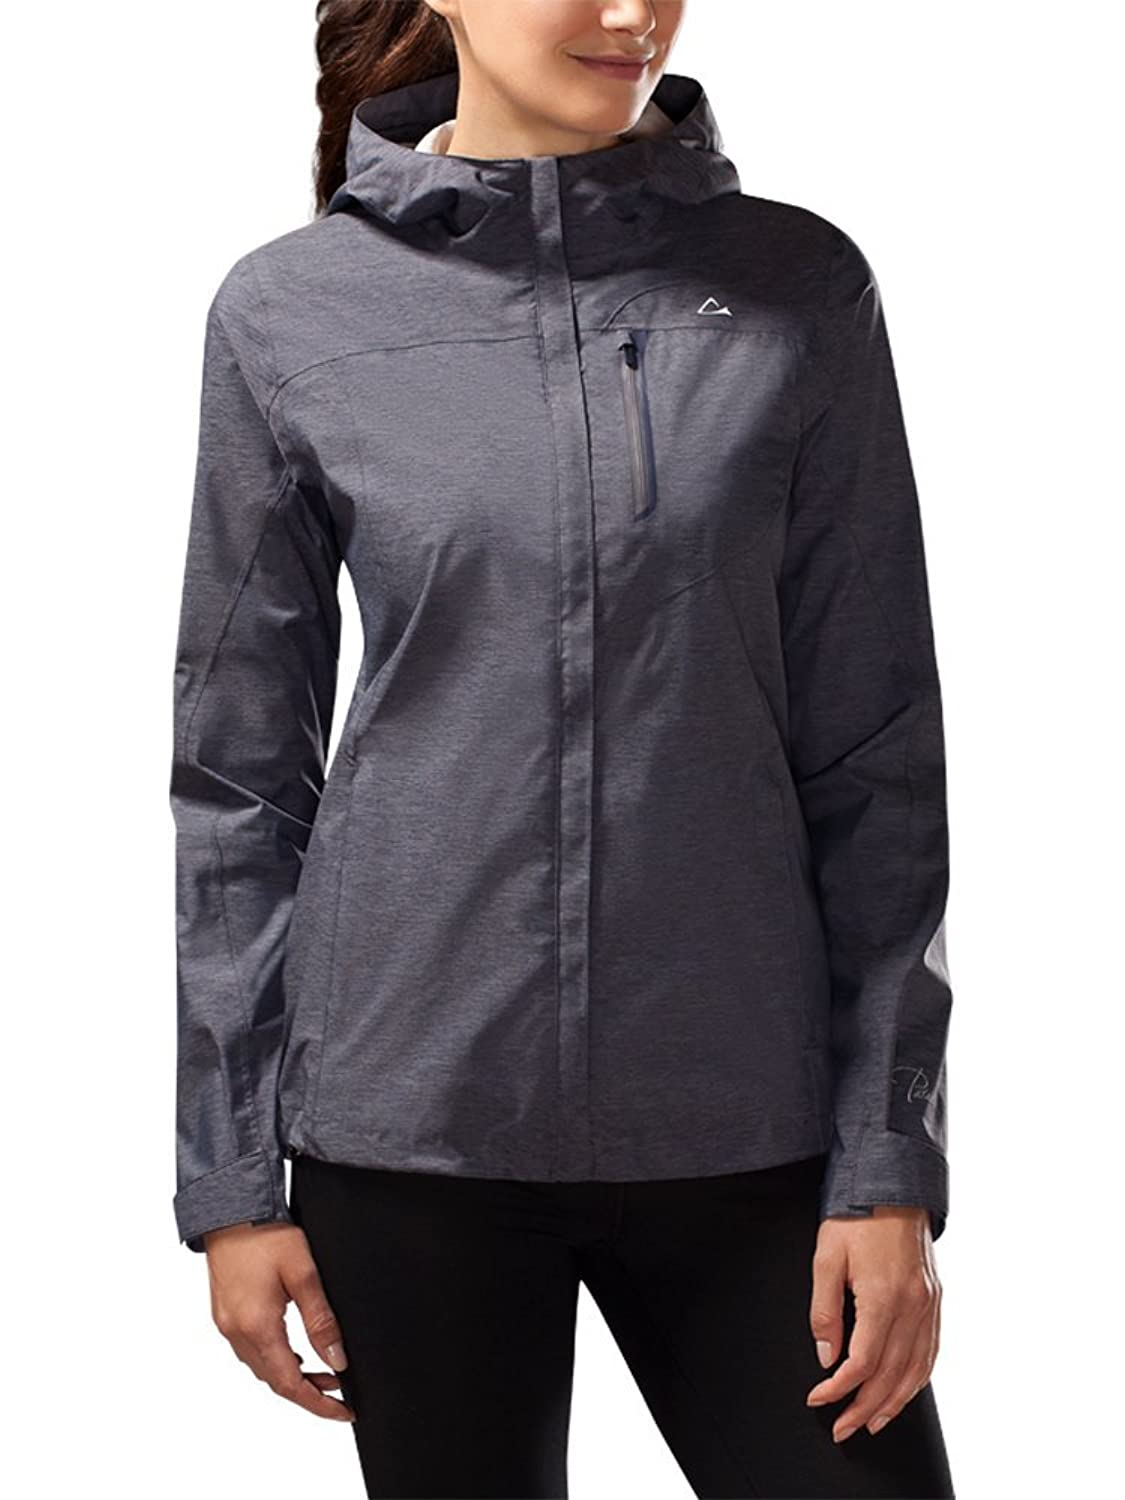 Jacket Outdoor Jacket